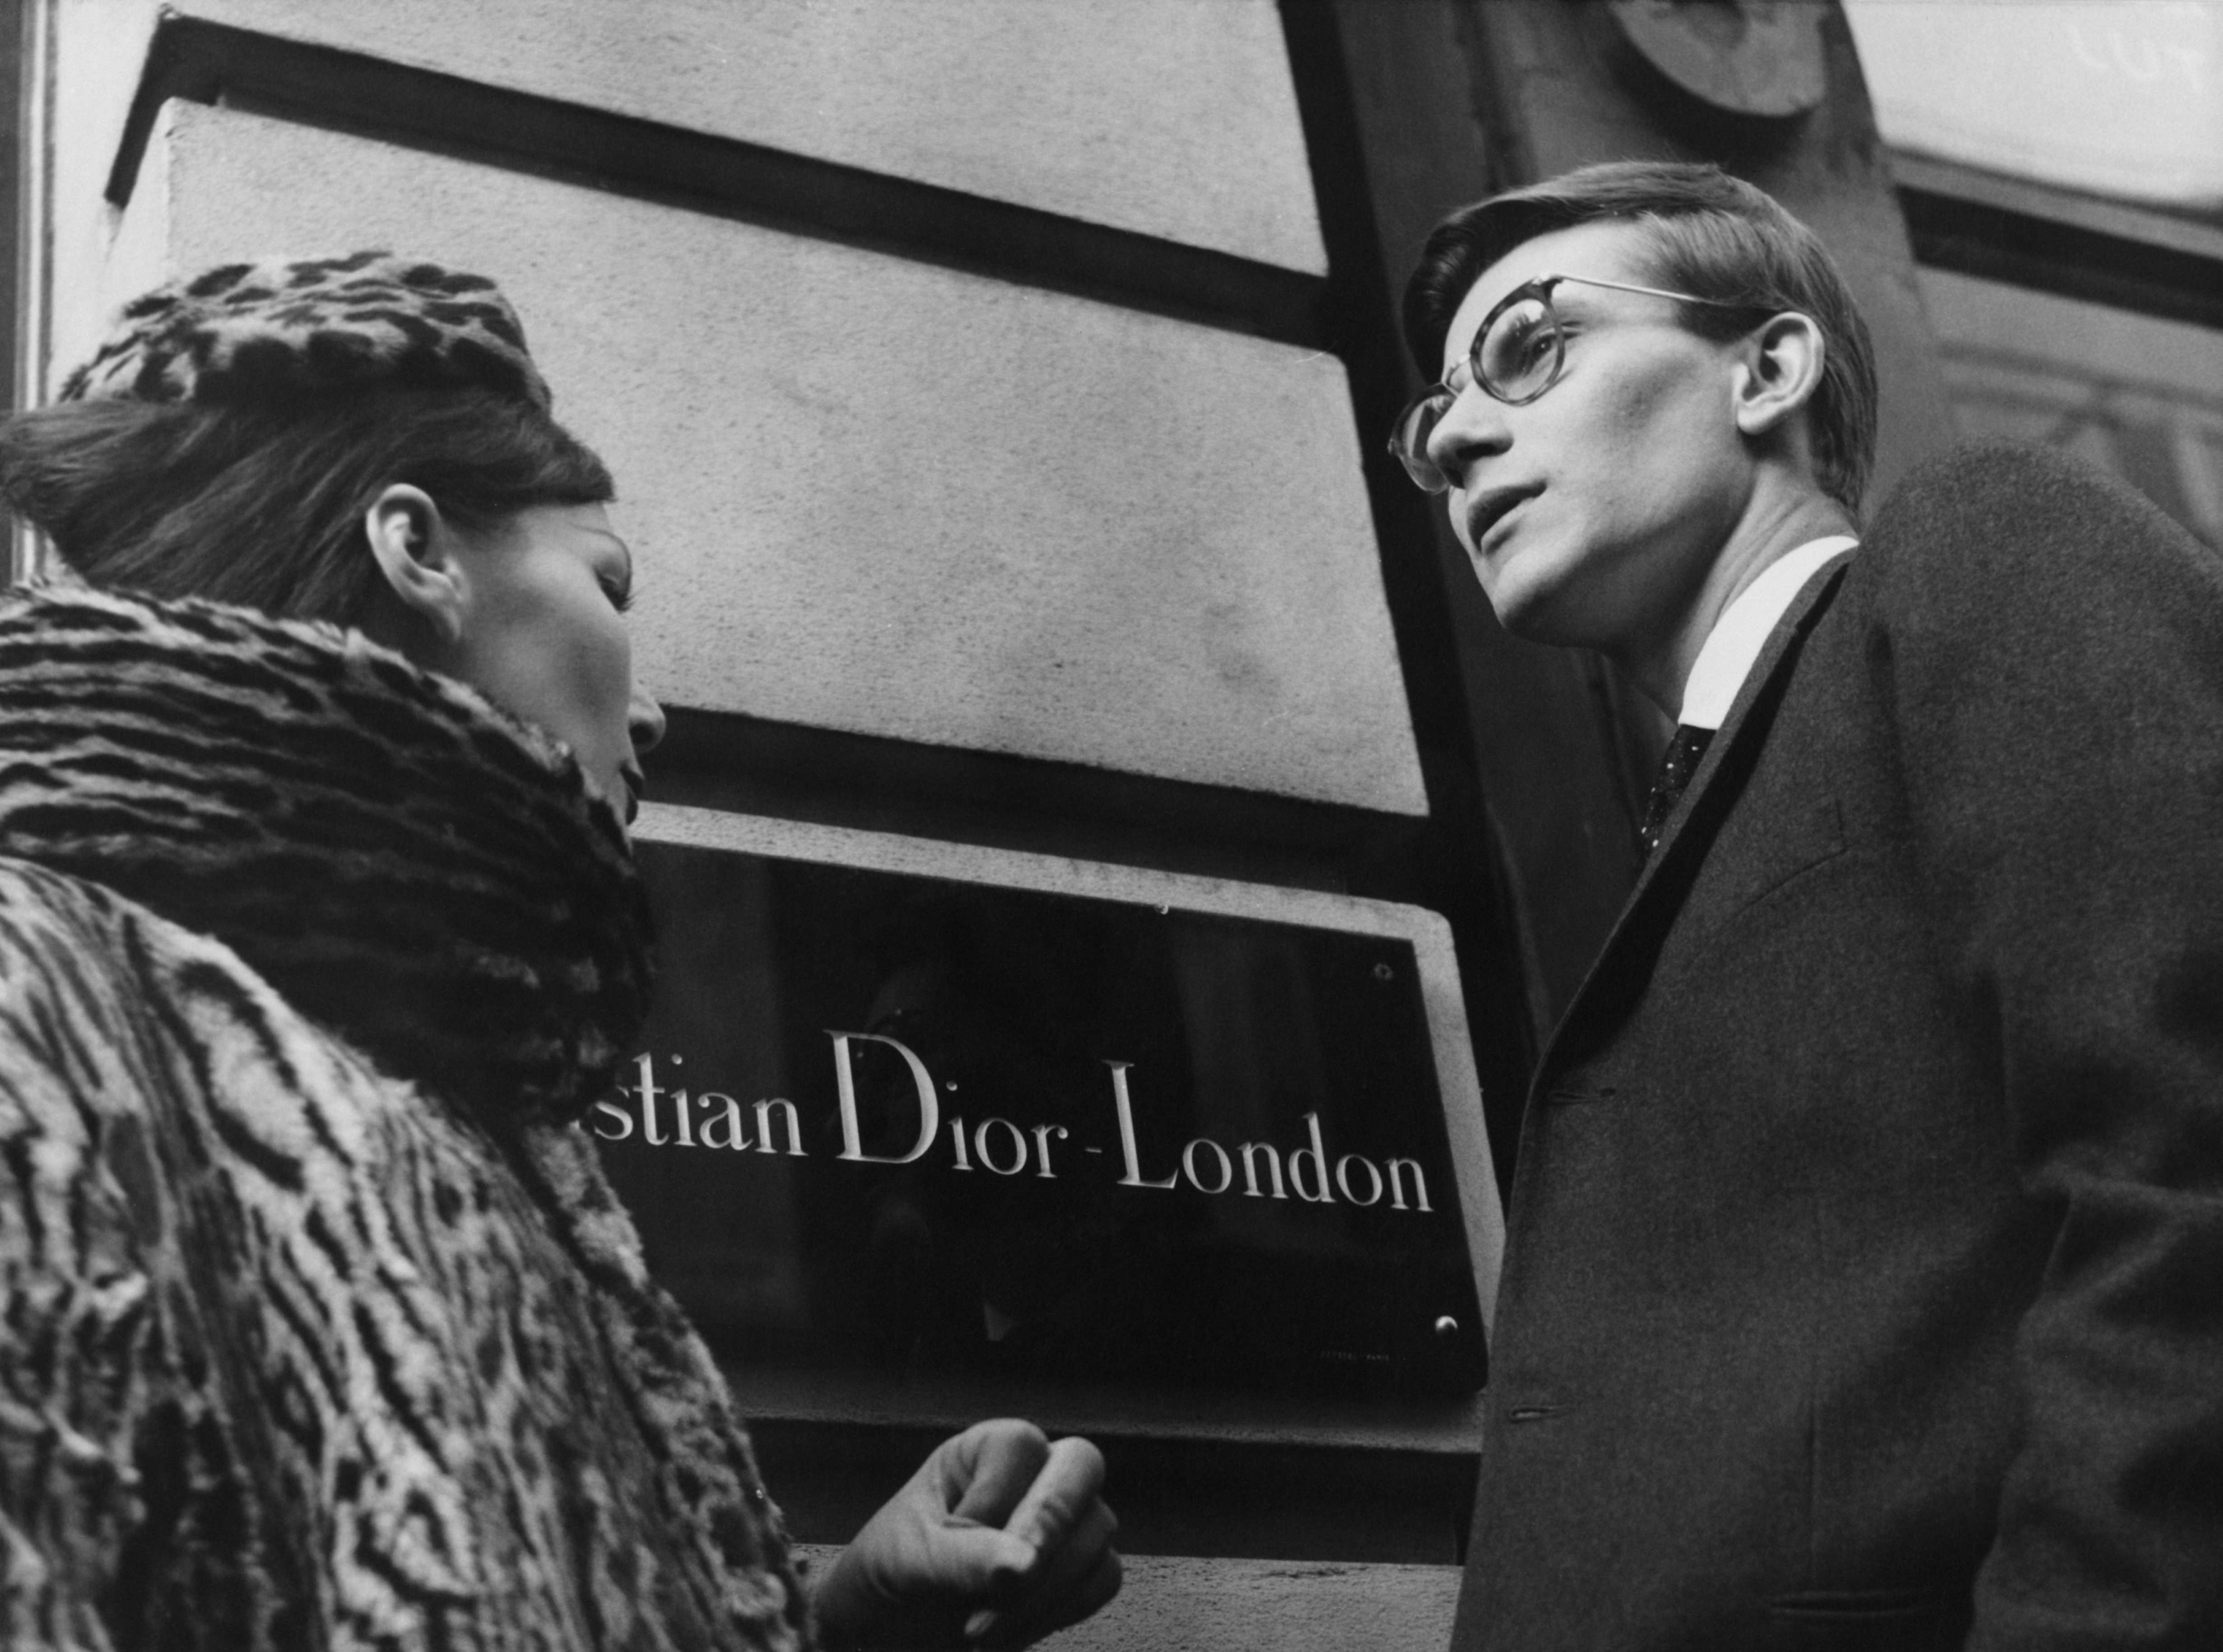 French fashion designer Yves Saint Laurent (1936 - 2008) in London, 11th November 1958. He is preparing for the following day's Dior Autumn collection show to an audience including Princess Margaret, at Blenheim Palace. Photo by Popperfoto/Getty Images